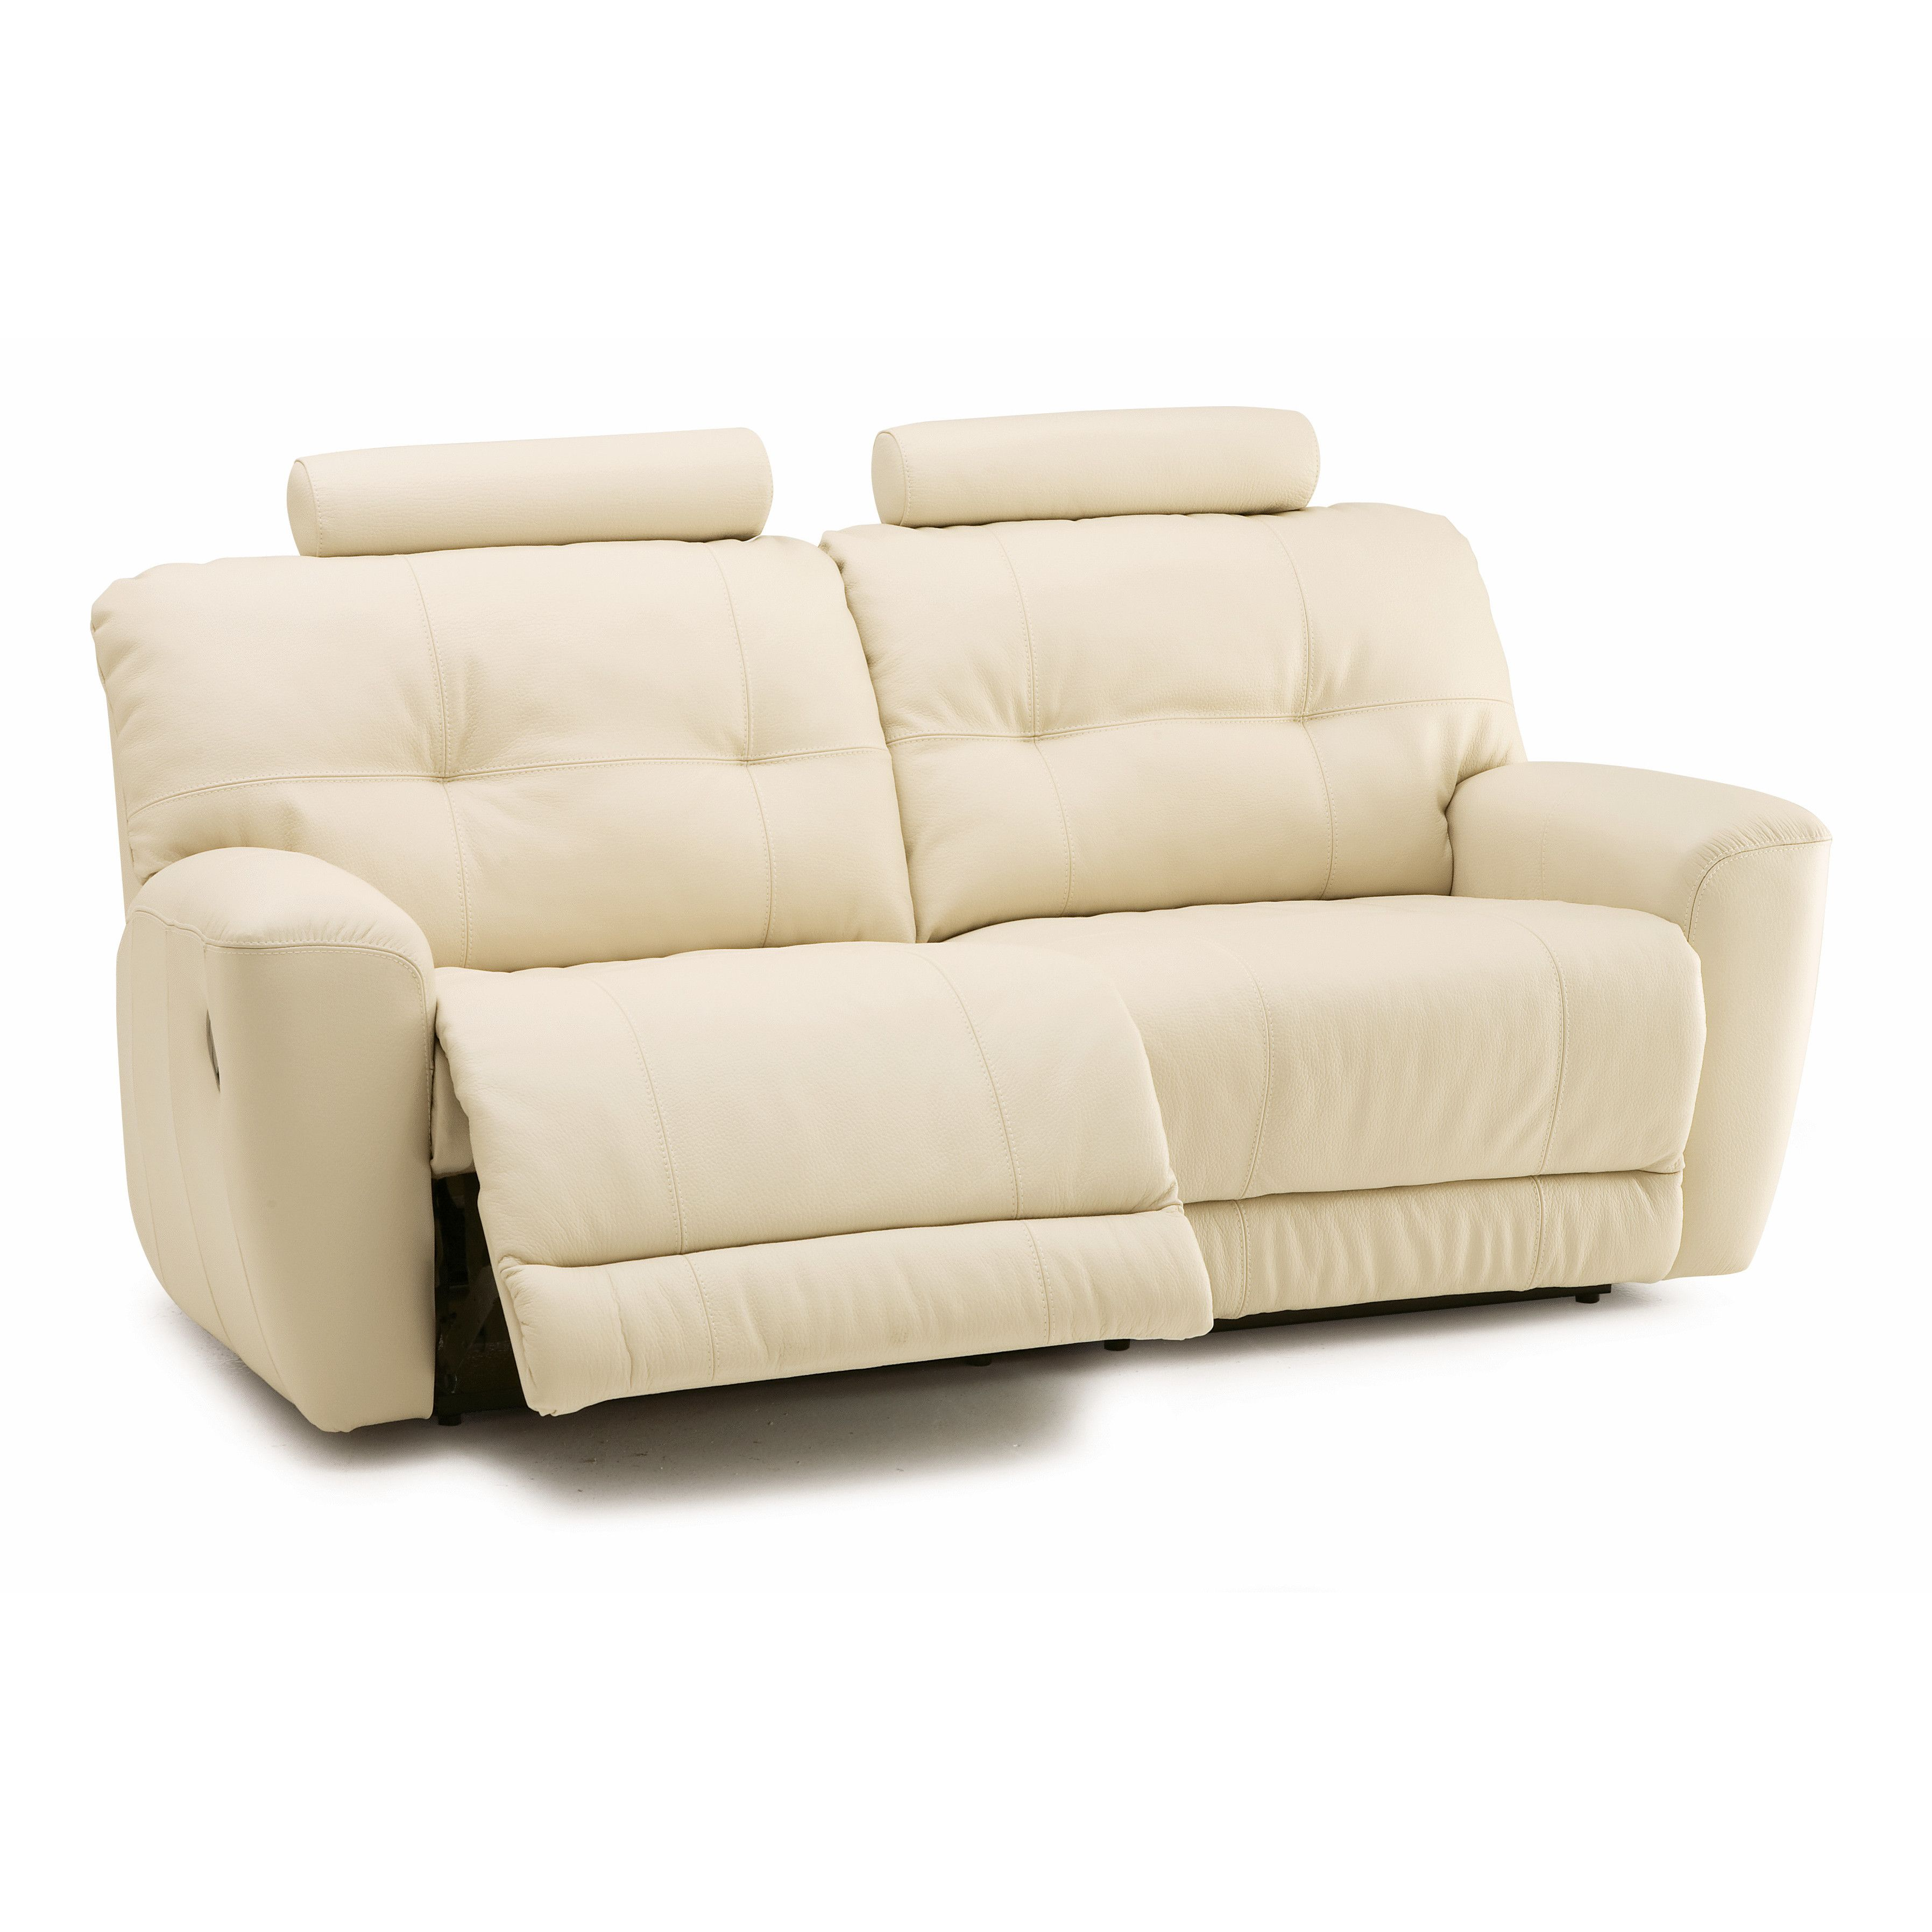 Galore Reclining Sofa By Palliser Furniture Lots Of Diffe Colors Leather Type Overall Product